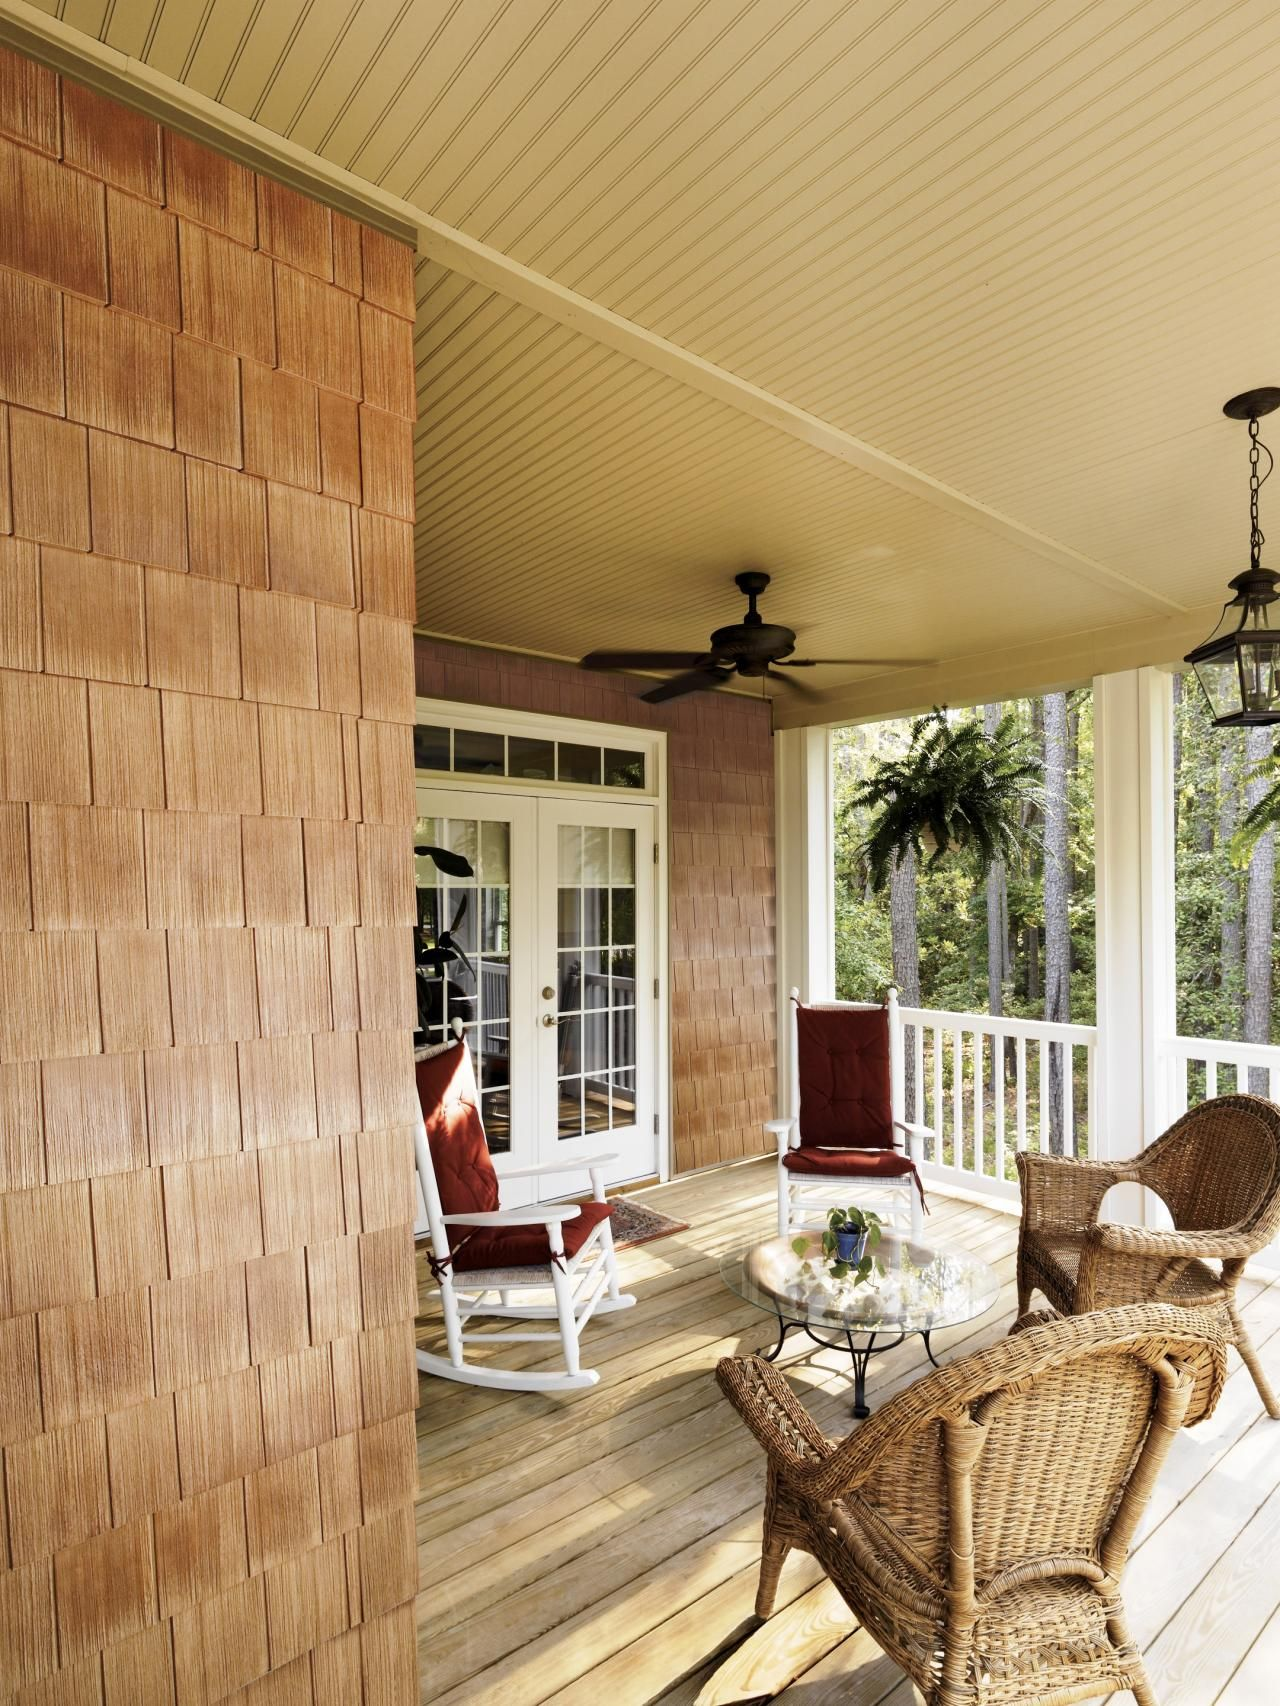 Getting ready to re-side your house?  DIY Network offers tips on how to compare costs, weigh pros and cons, and learn how each of today's most popular siding materials rank when it comes to being earth-friendly.